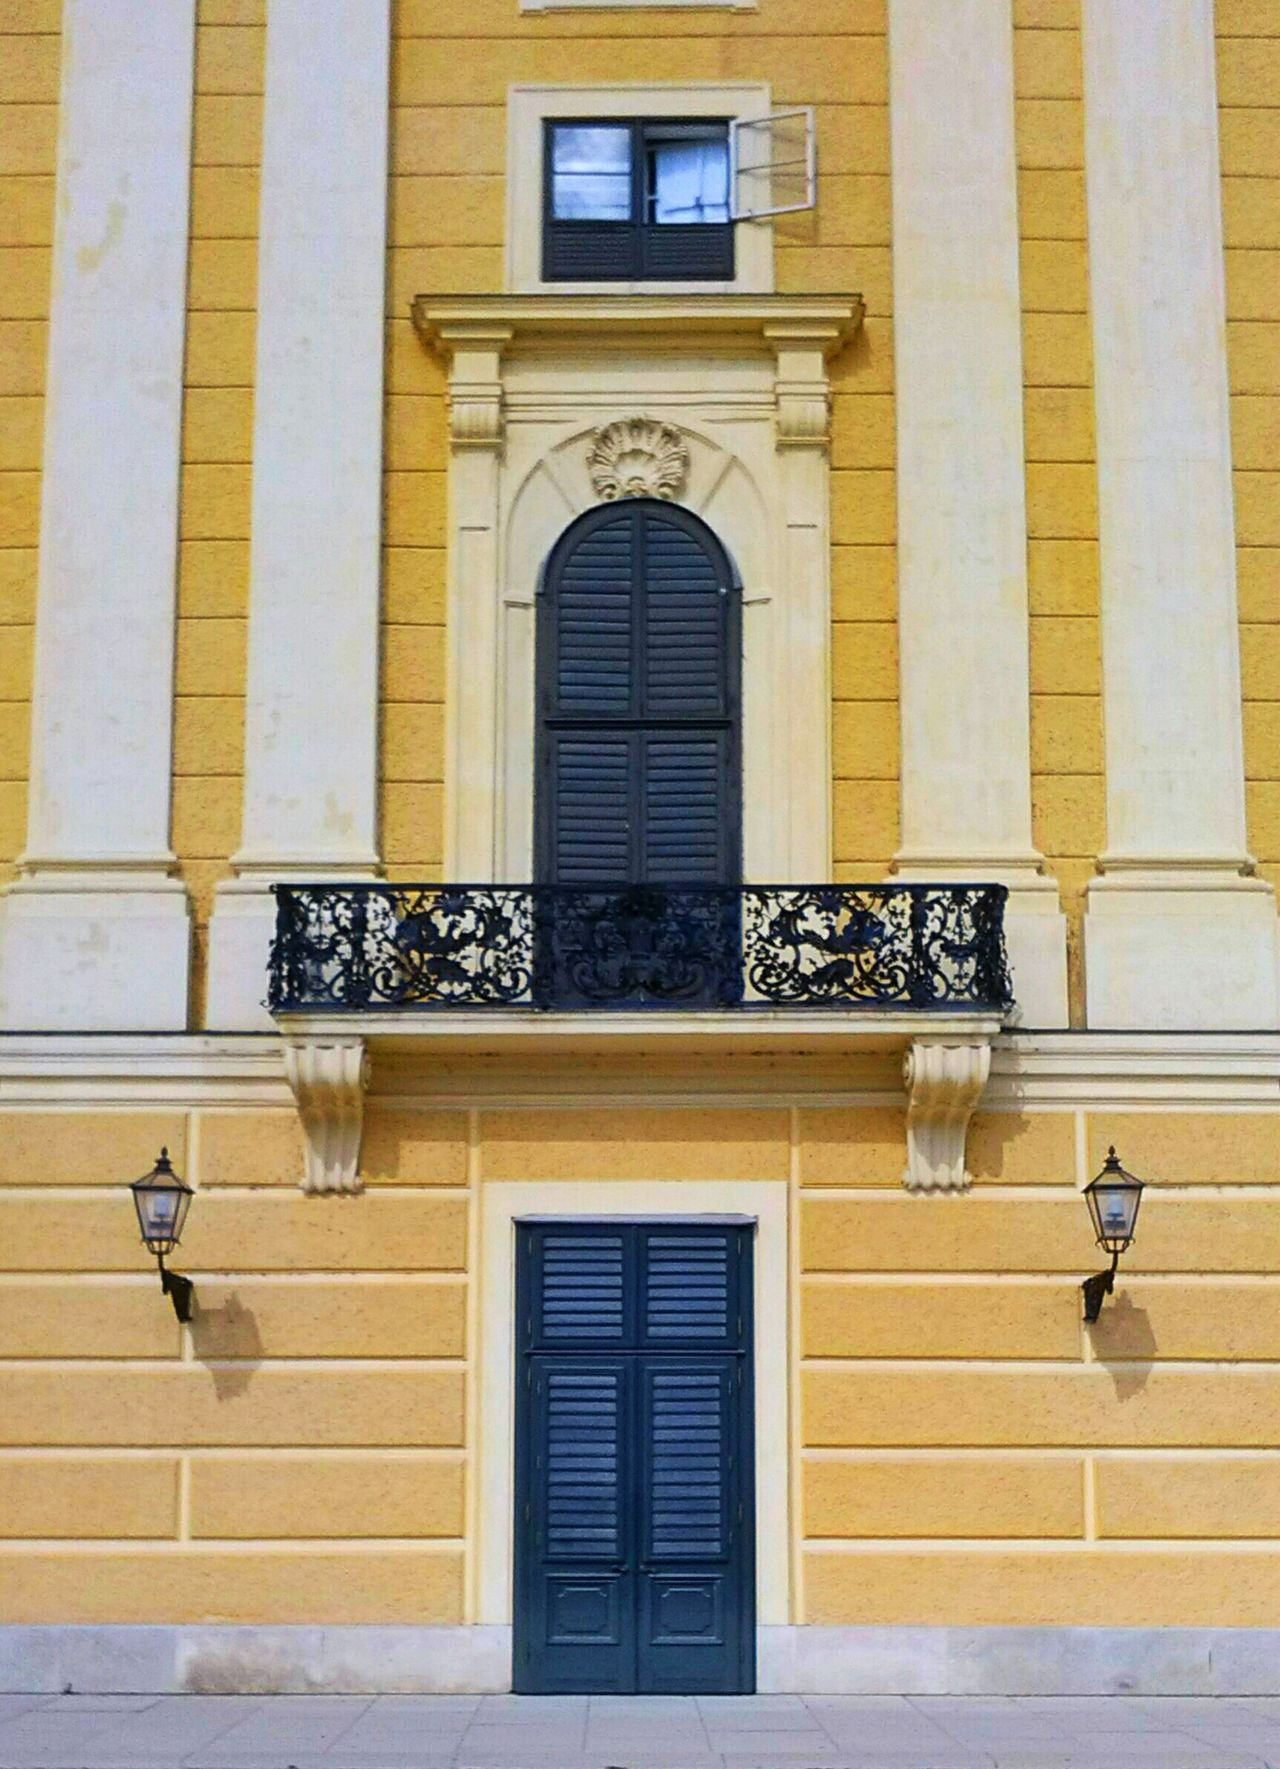 Built Structure Building Exterior Architecture Window Arch Residential Building Façade House Yellow Day Entrance Outdoors Arched Exterior Historic Window Frame Ostrich Austria Wien Vienna City Schönnbrunn Schonnbrun Palace Castle Low Angle View